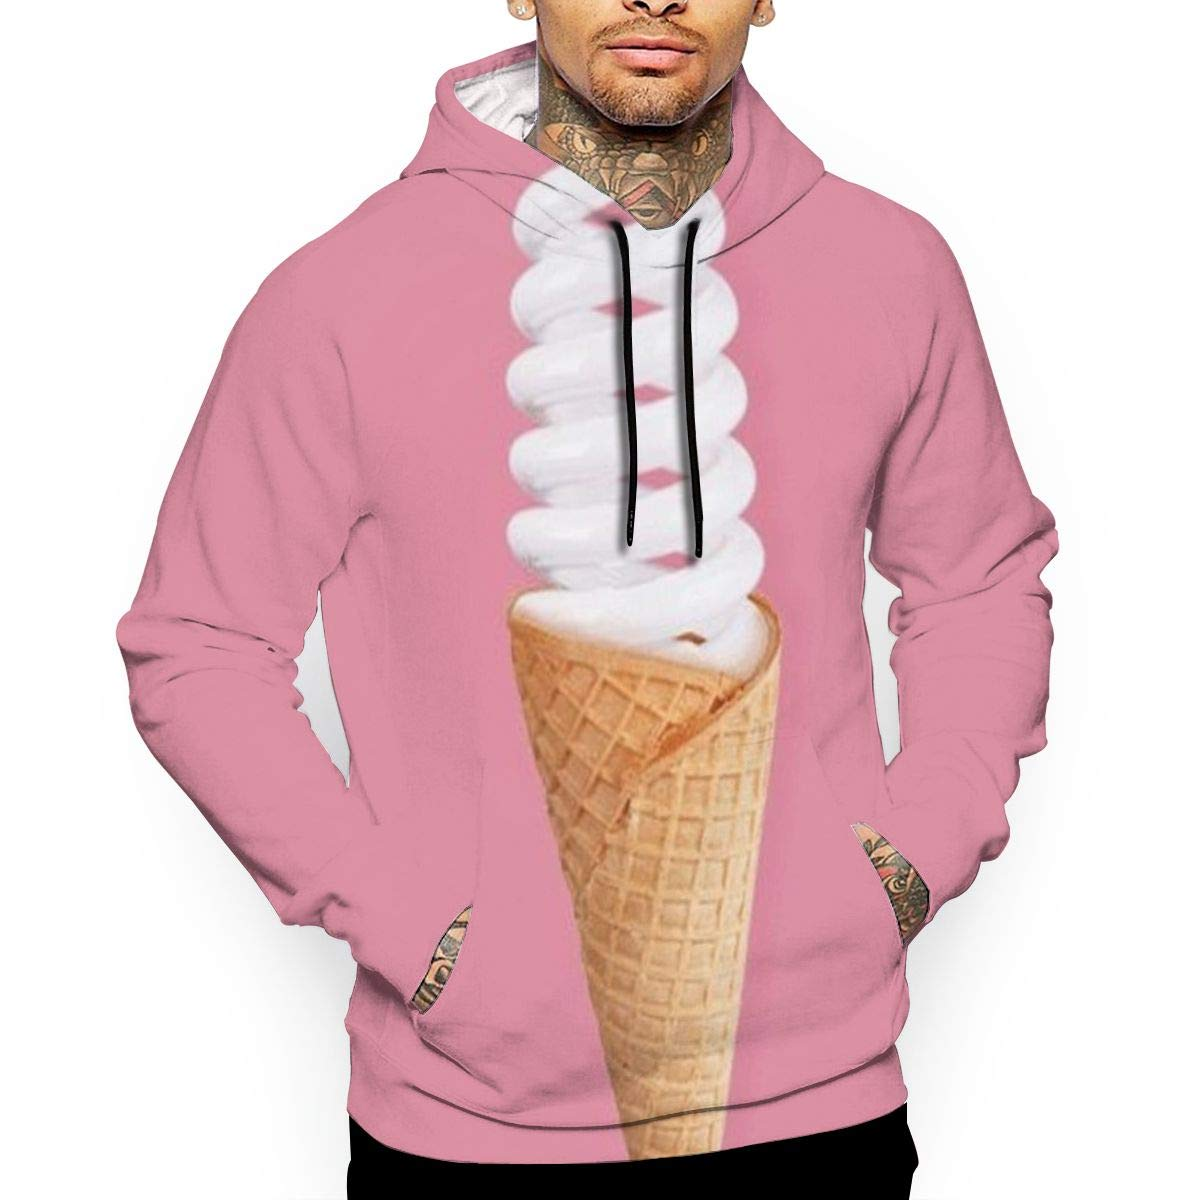 Bulb Ice Cream Creative Illustration T-Shirt Hooded with A Pocket Rope Hat Customization Fashion Novelty 3D Mens